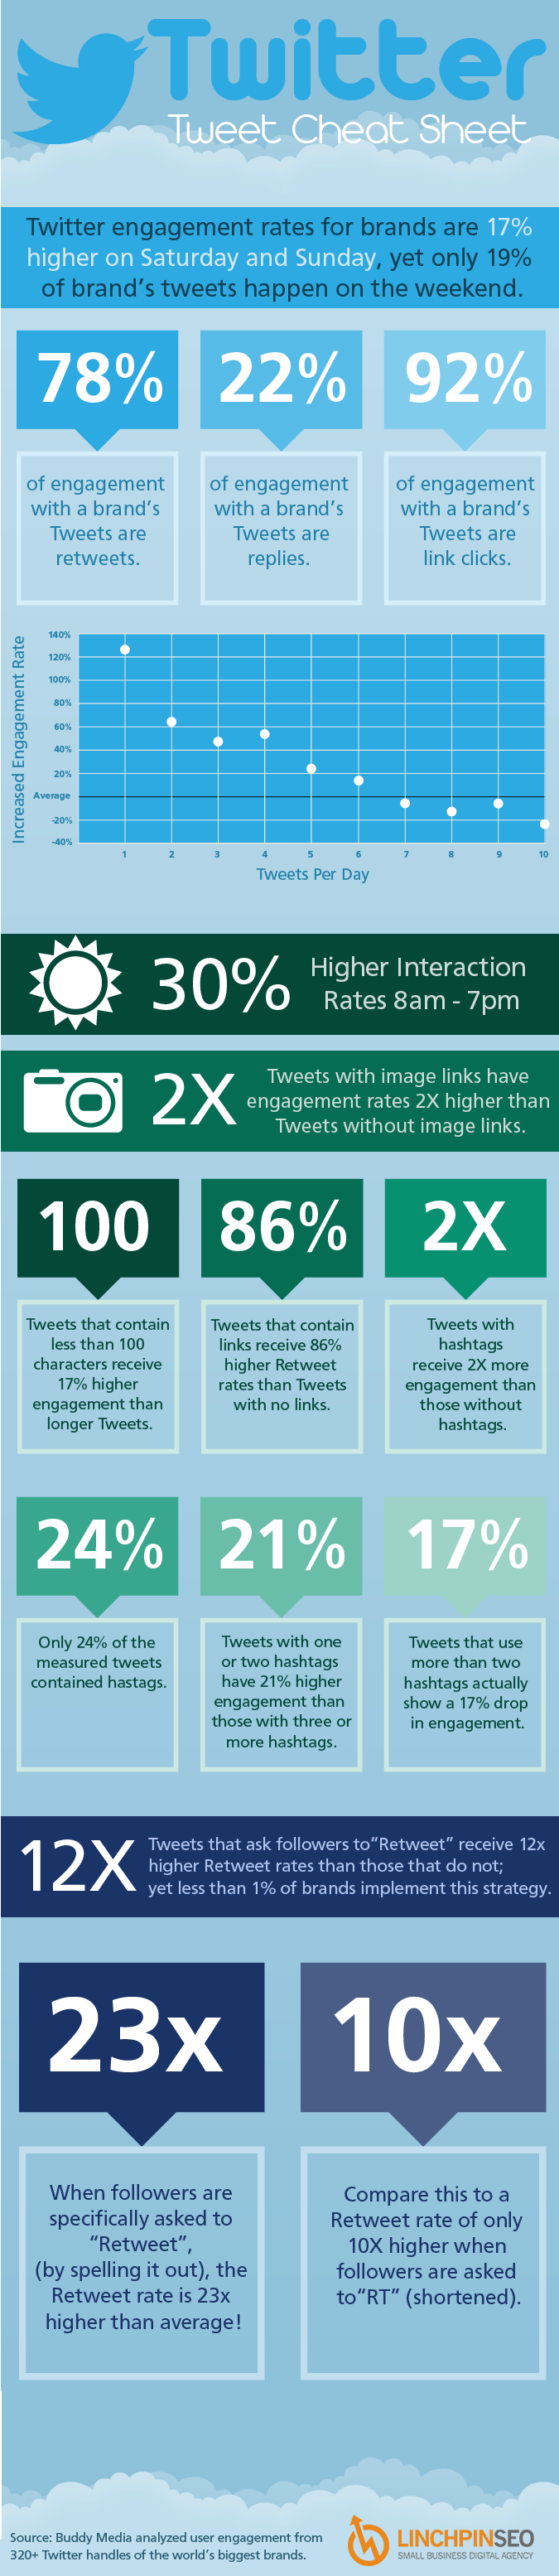 Twitter Cheat Sheet to Help Increase Engagement | Infographic on GOOD